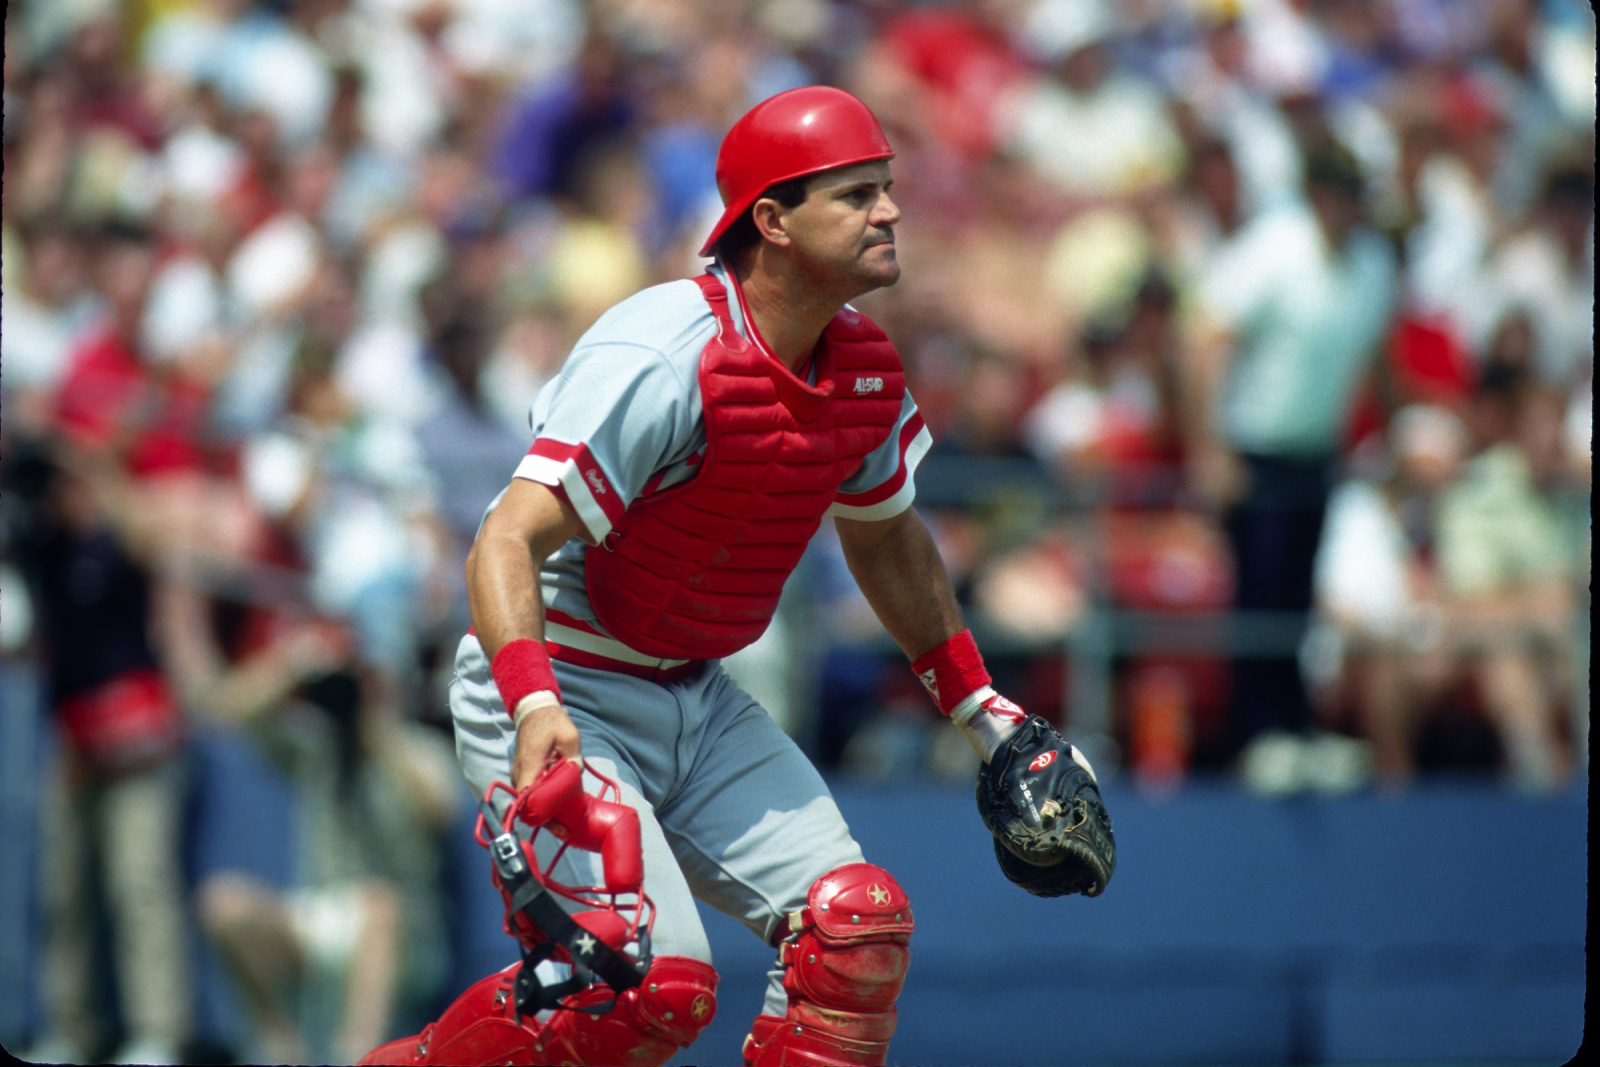 Former Cincinnati Reds All-Star Bo Diaz Was Tragically Crushed To Death by a Satellite Dish While Amid an MLB Comeback Attempt